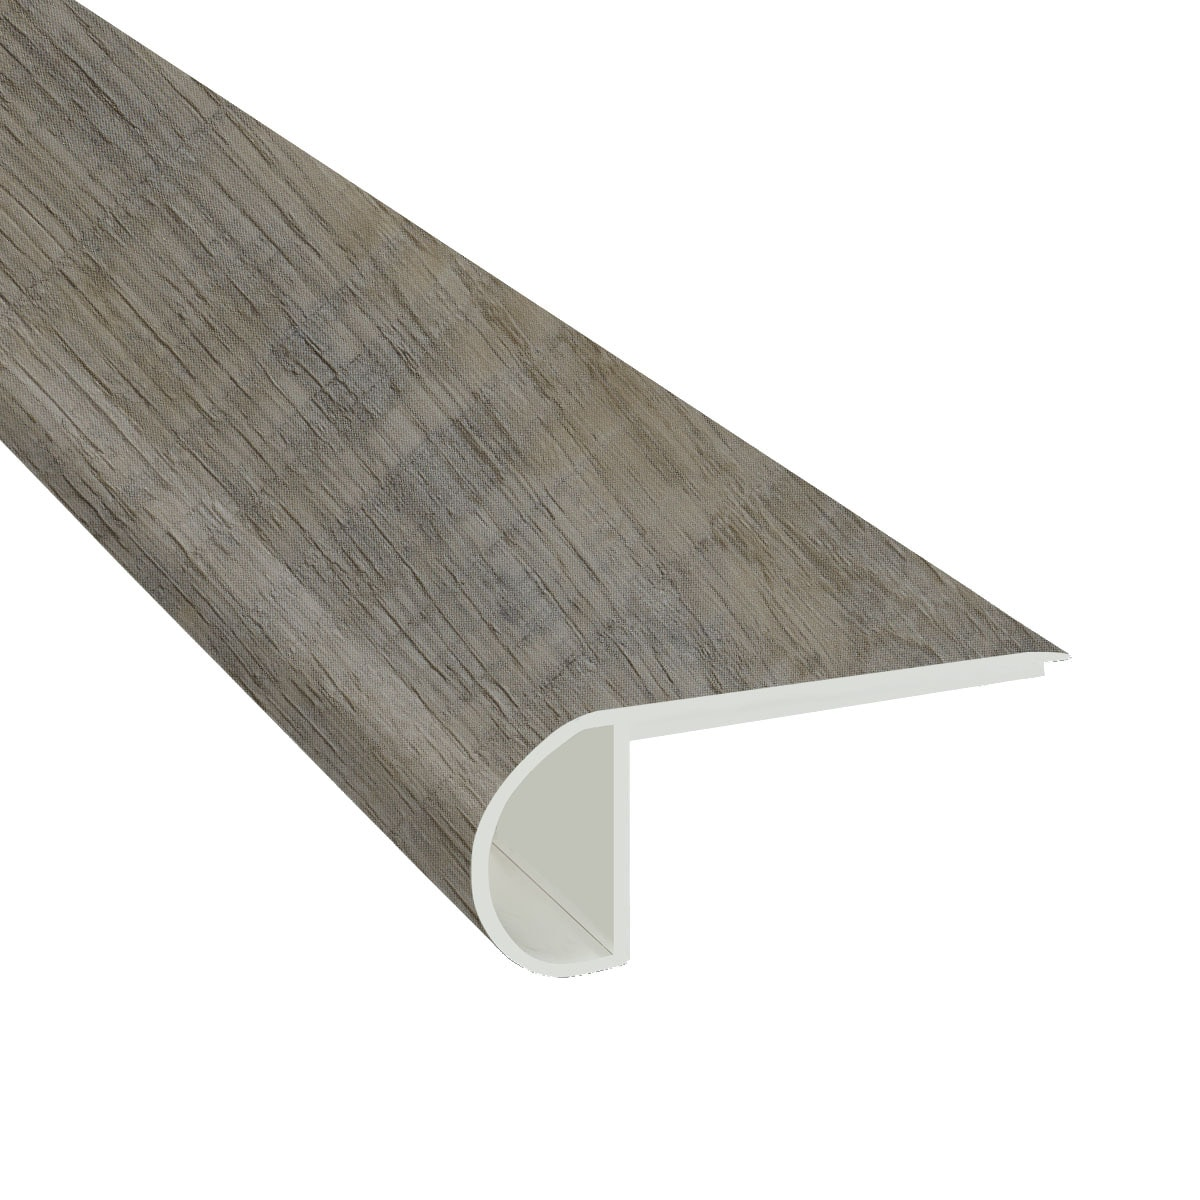 Cabot Vinyl Planks Moldings Cabot Spc Collections Weathered Oyster Flush Stairnose 94 X 2 3 4 X 3 4